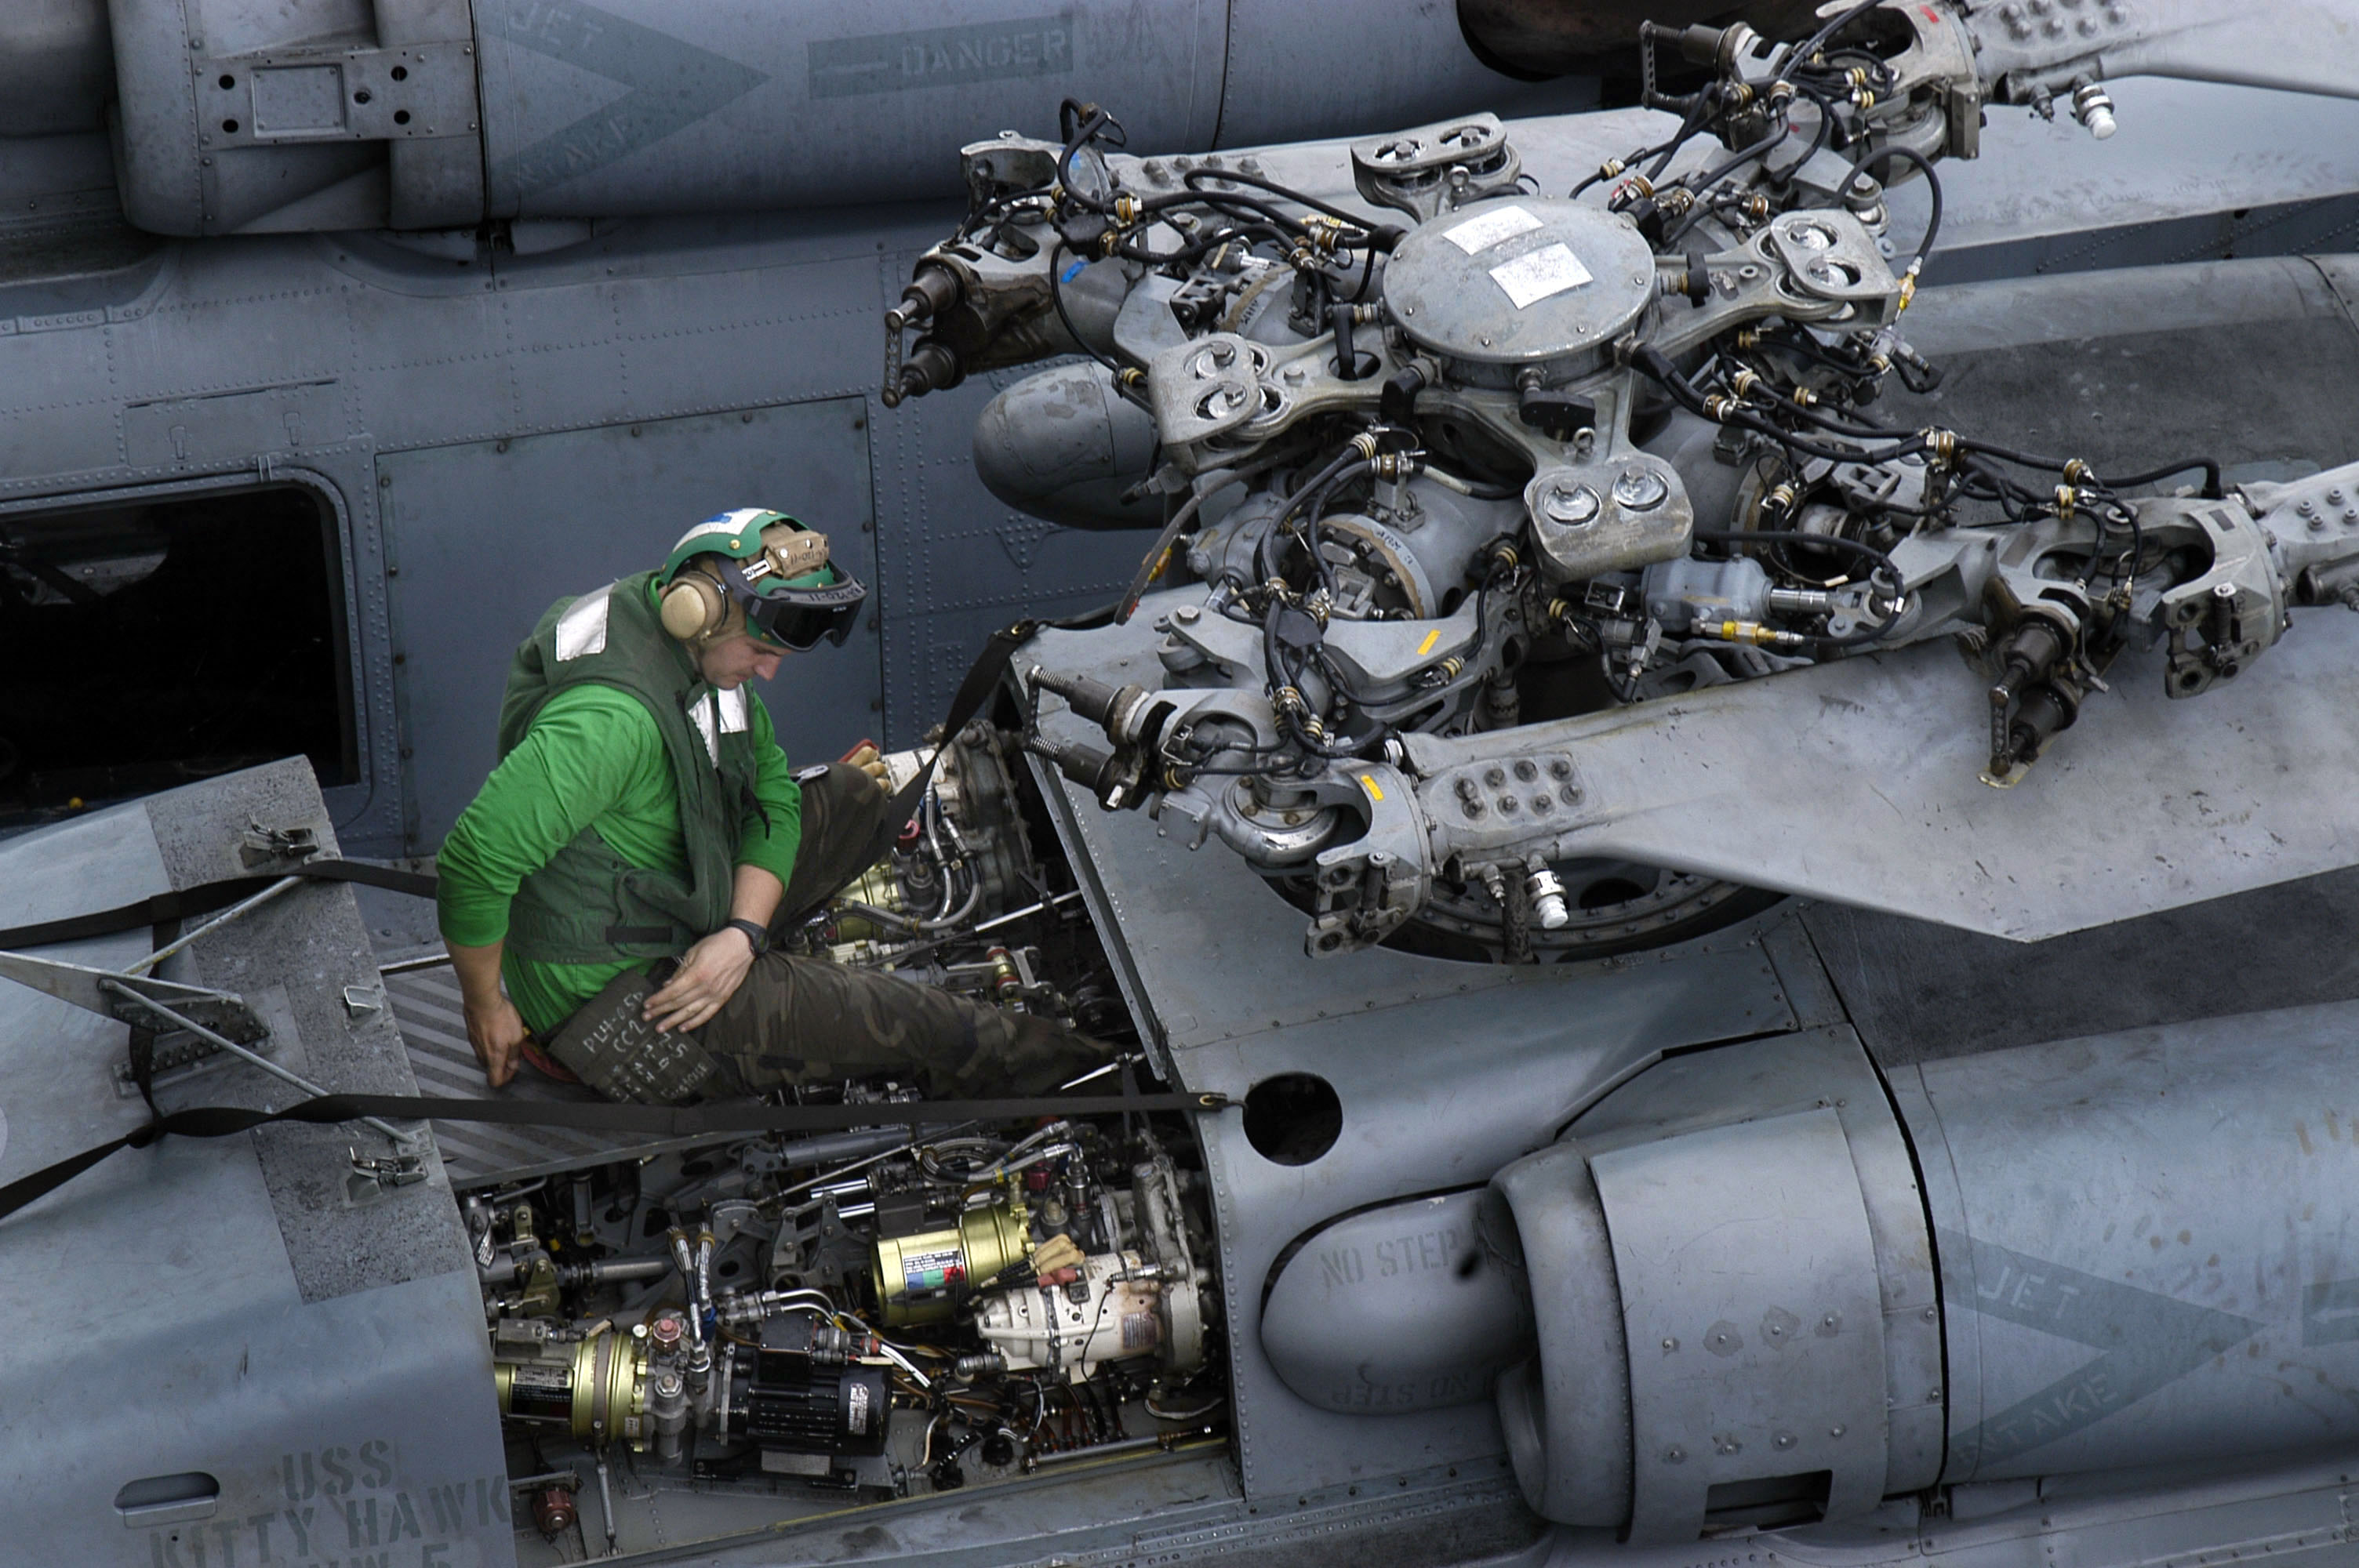 US_Navy_050525-N-0167B-011_An_Aviation_Electronics_Technician_performs_corrosion_control_on_an_HH-60H_Seahawk_helicopter.jpg